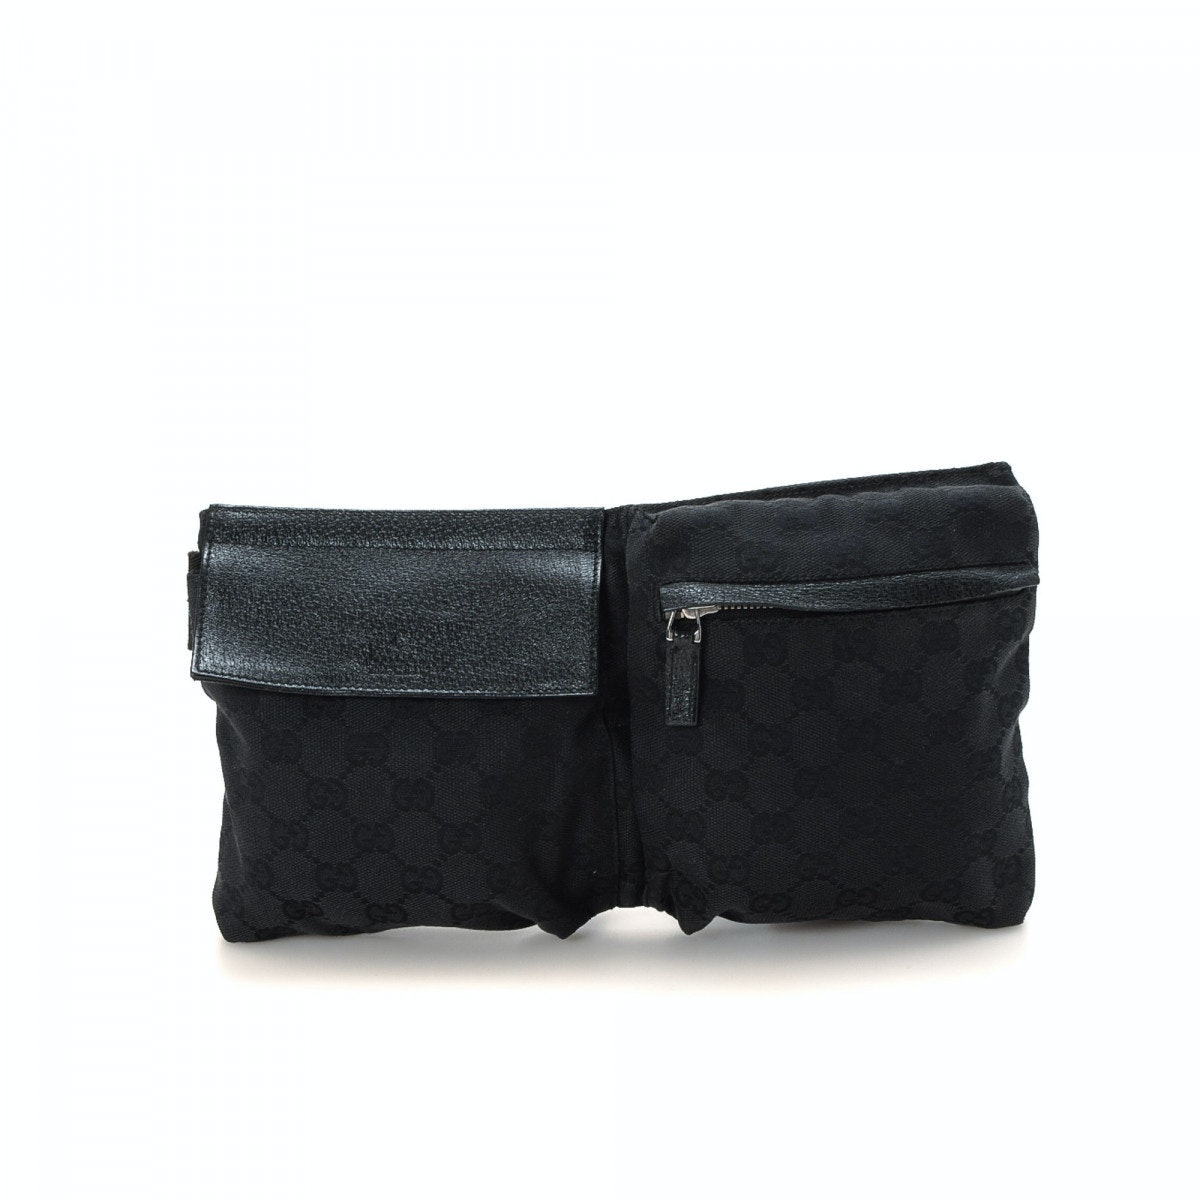 Gucci Waistbag Monogram GG Black